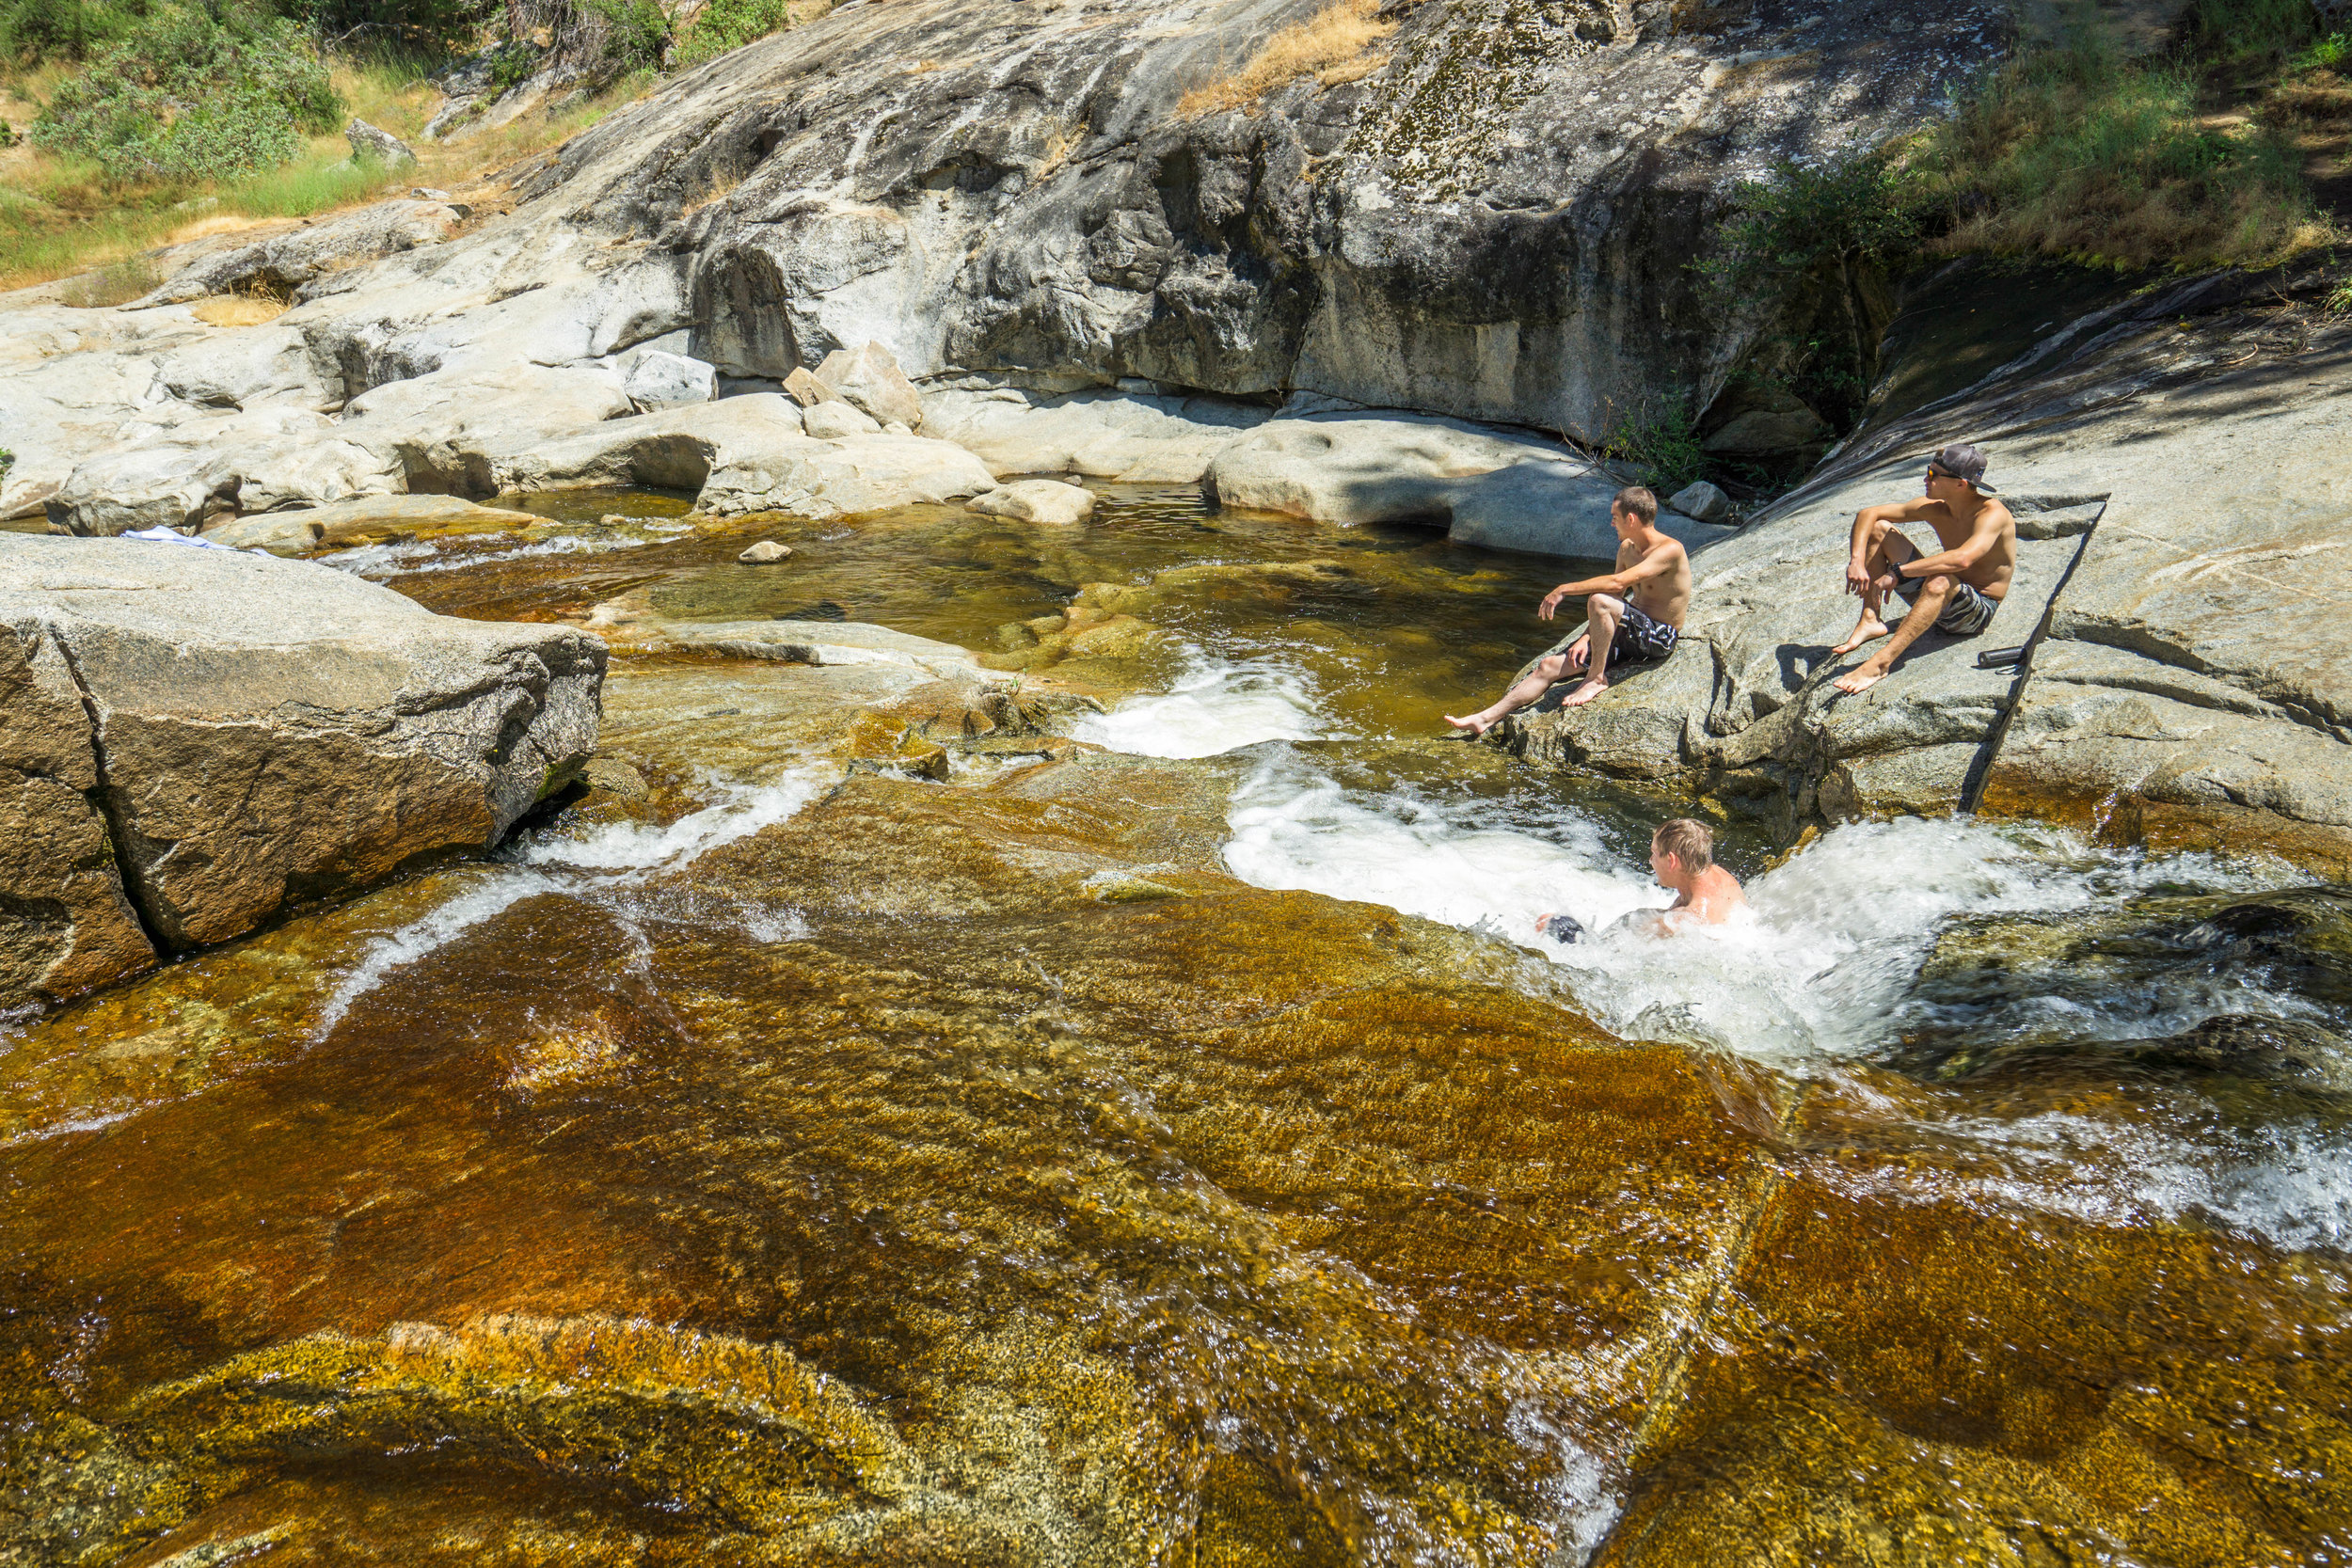 Interspersed deep pools provided a jacuzzi sized tub of refreshing mountain water.